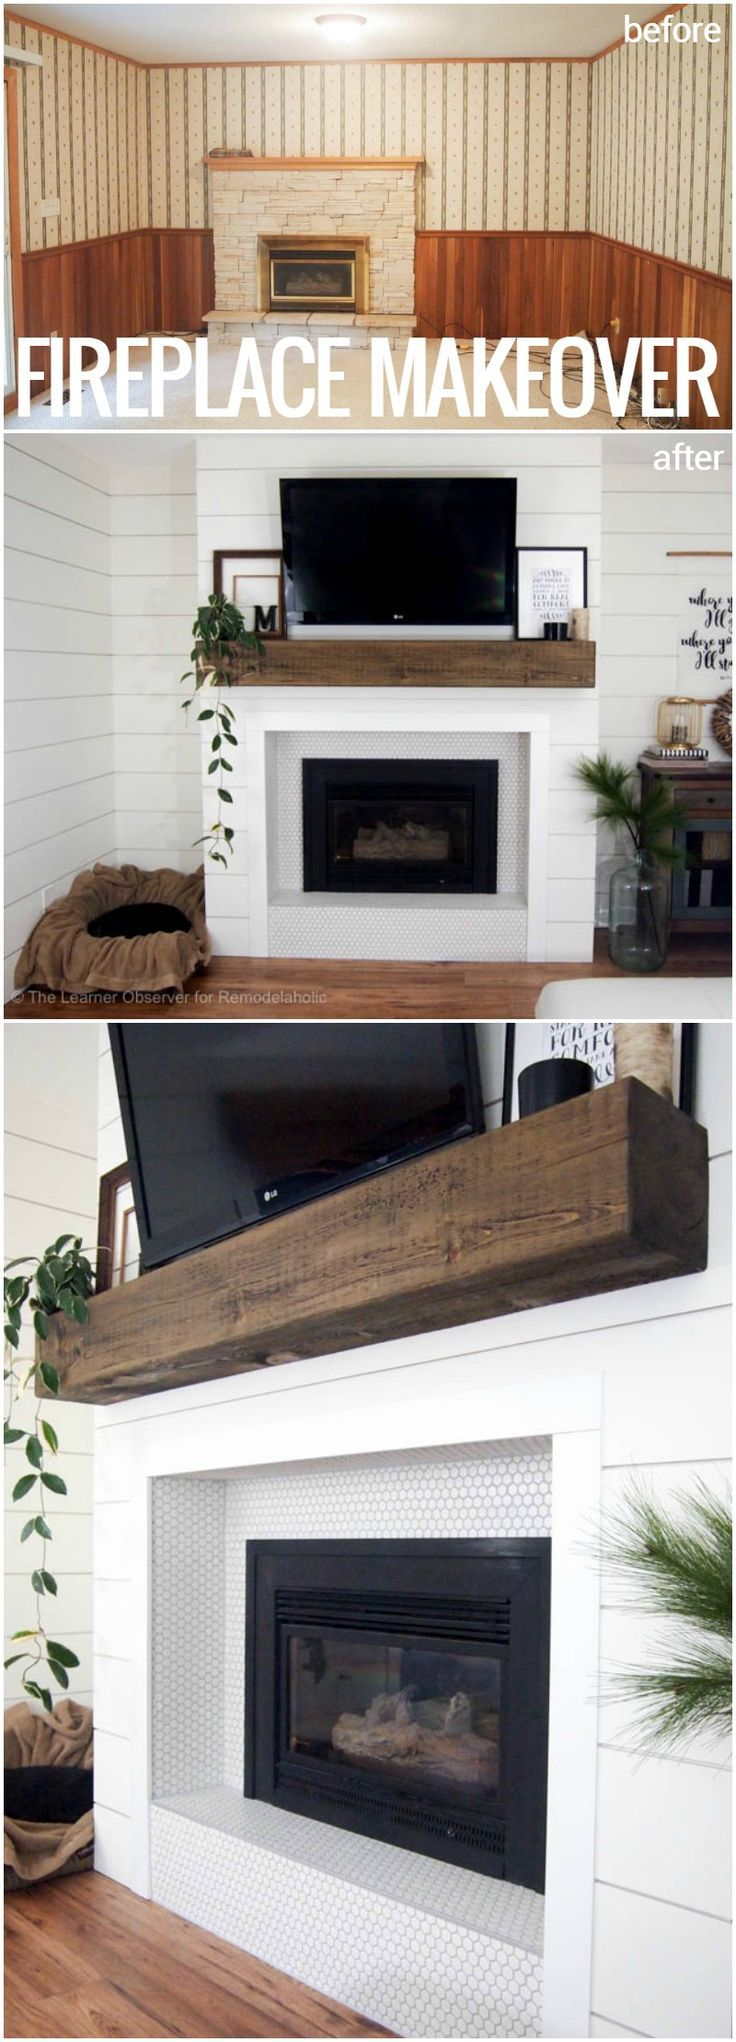 wood profits this dated mantel and fireplace makeover is stunning shiplap combined with penny tile and a wood beam mantel discover how you can start a